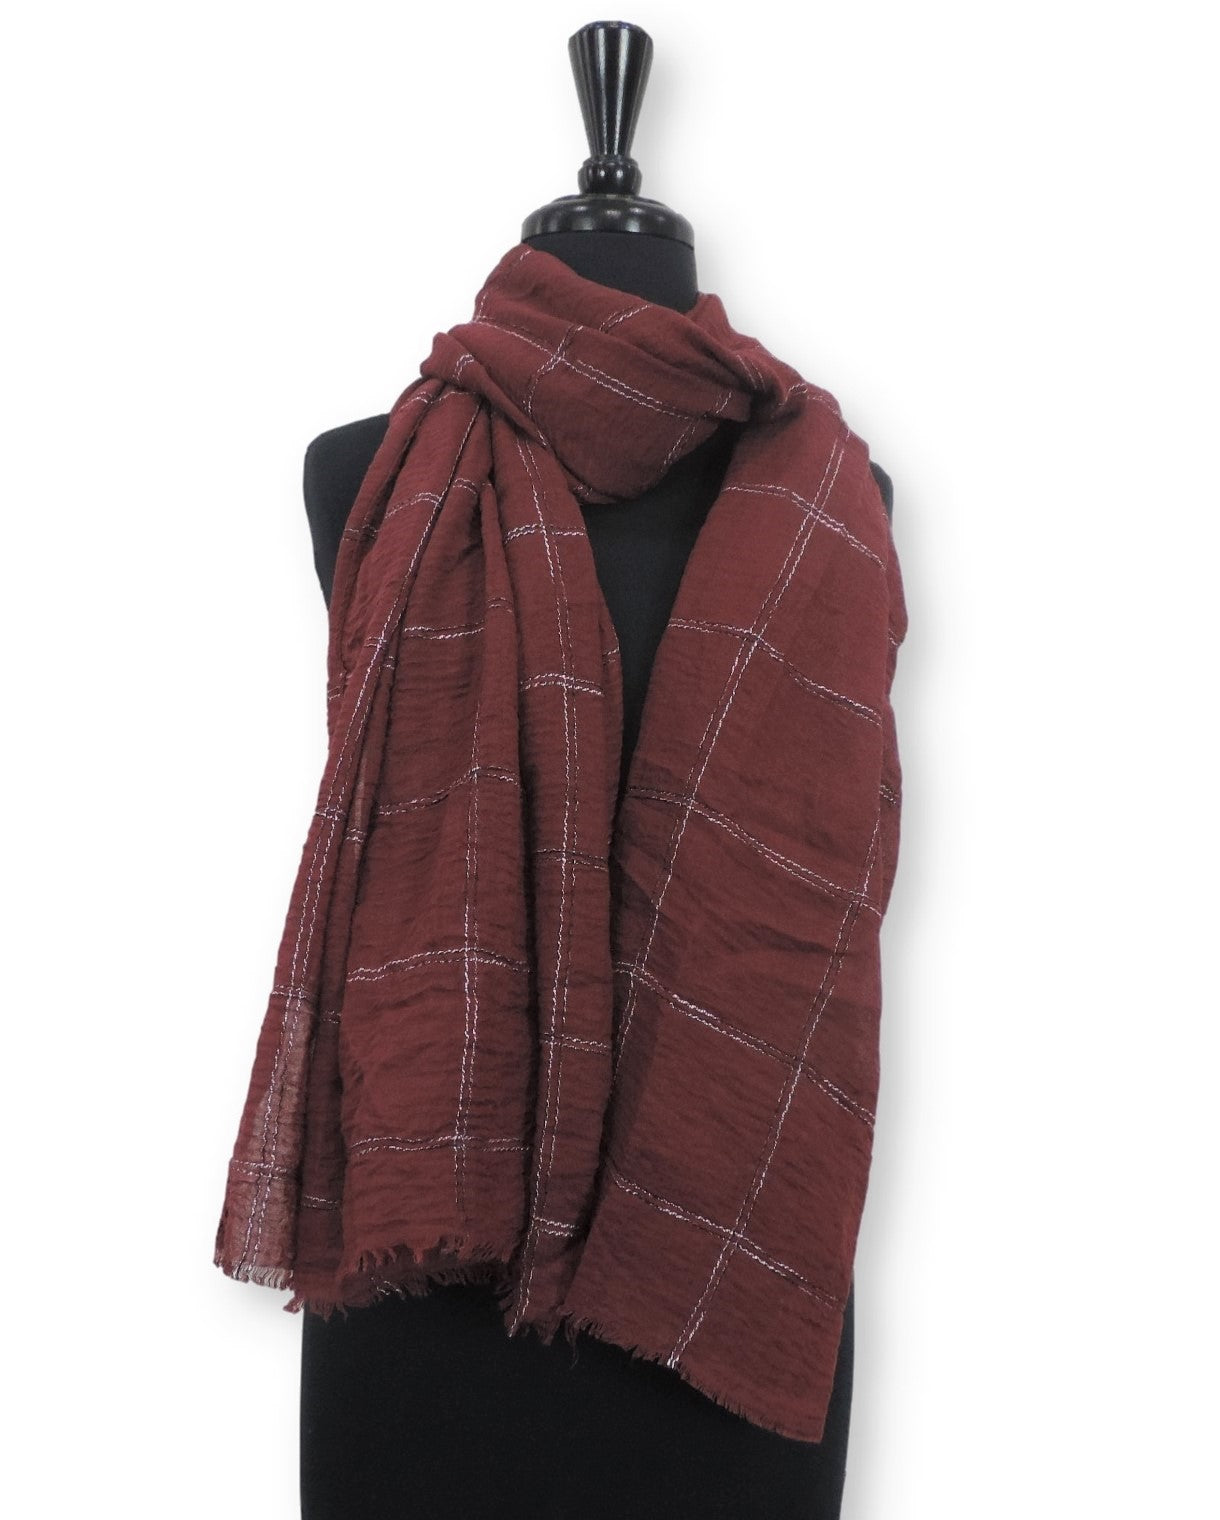 Currant Embroidered Bubble Cotton Scarf - Global Trendz Fashion®